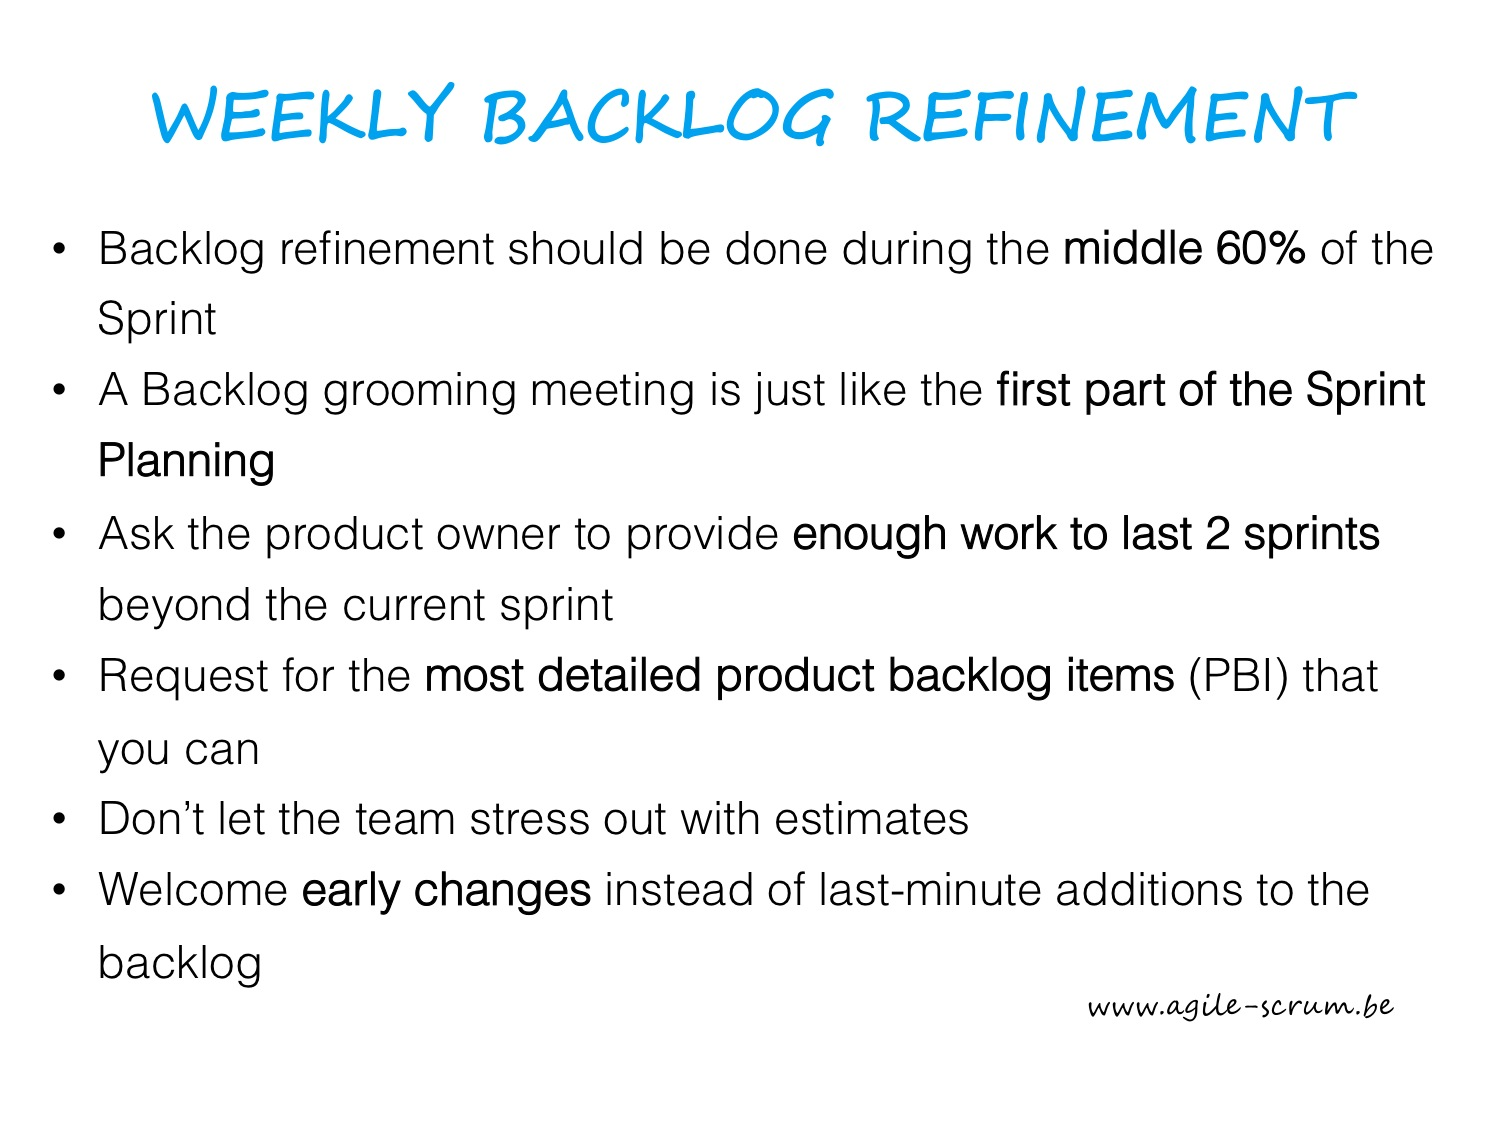 6 Tips for Weekly Backlog Refinement